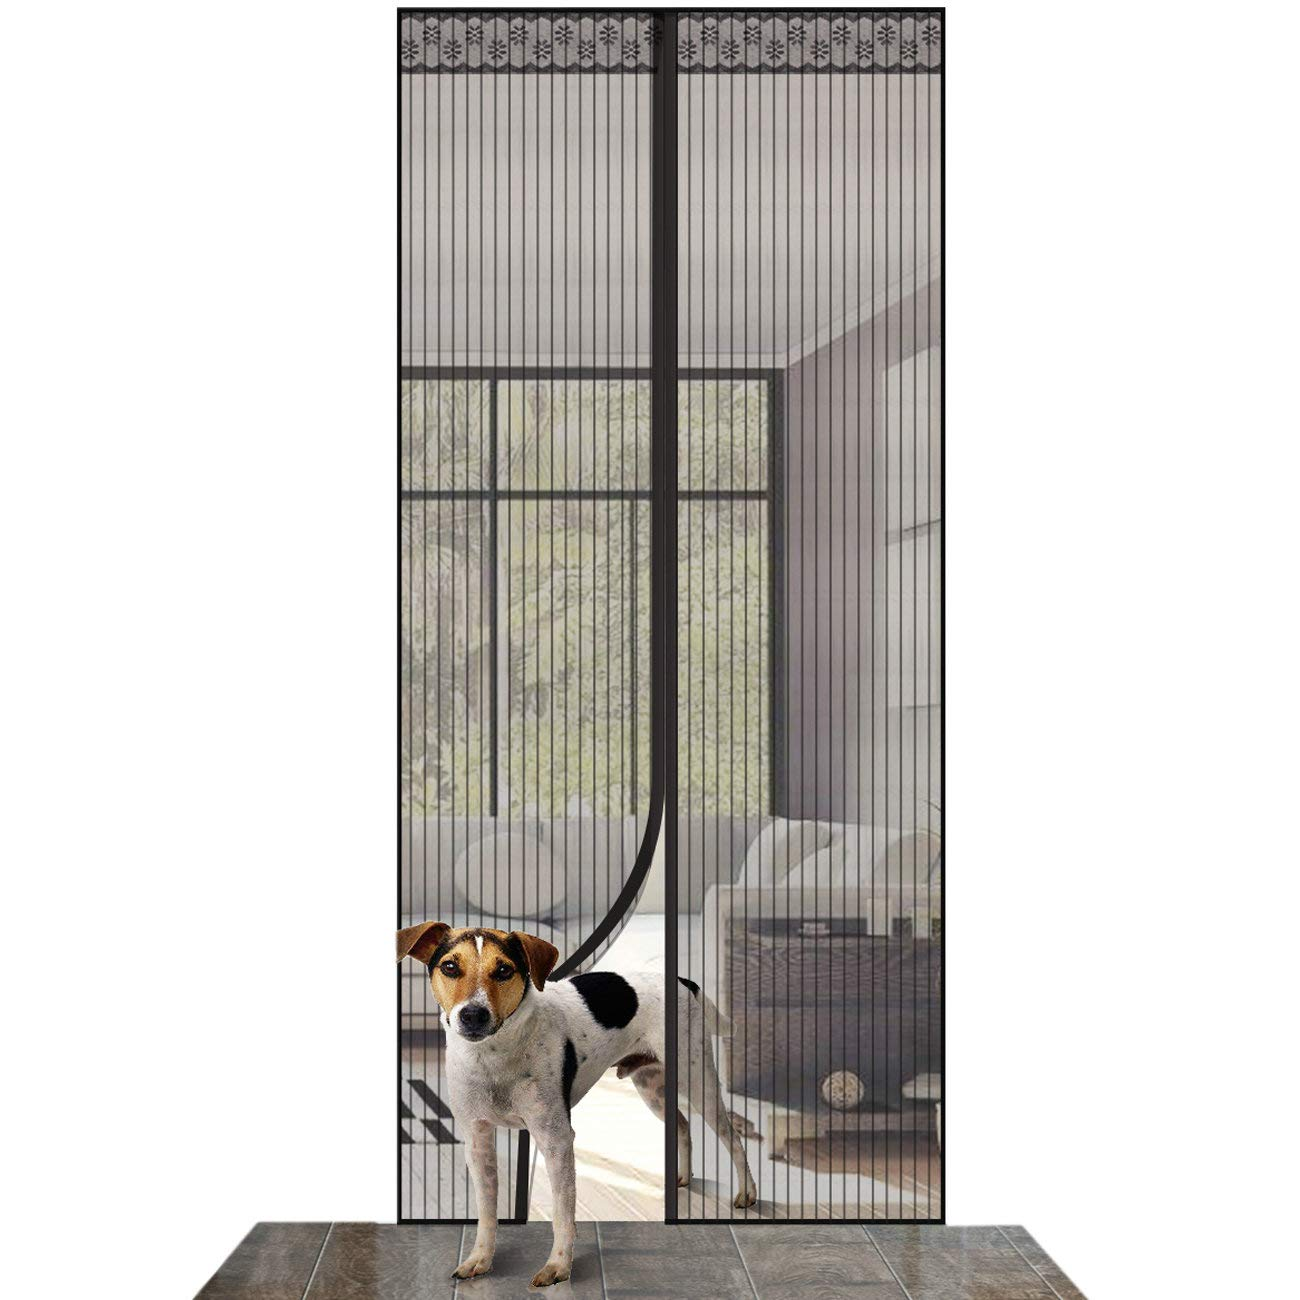 ASXON Magnetic Screen Door with Mesh Curtain to Keep Bugs Out Door with Full Frame Velcro 39'' x 83''